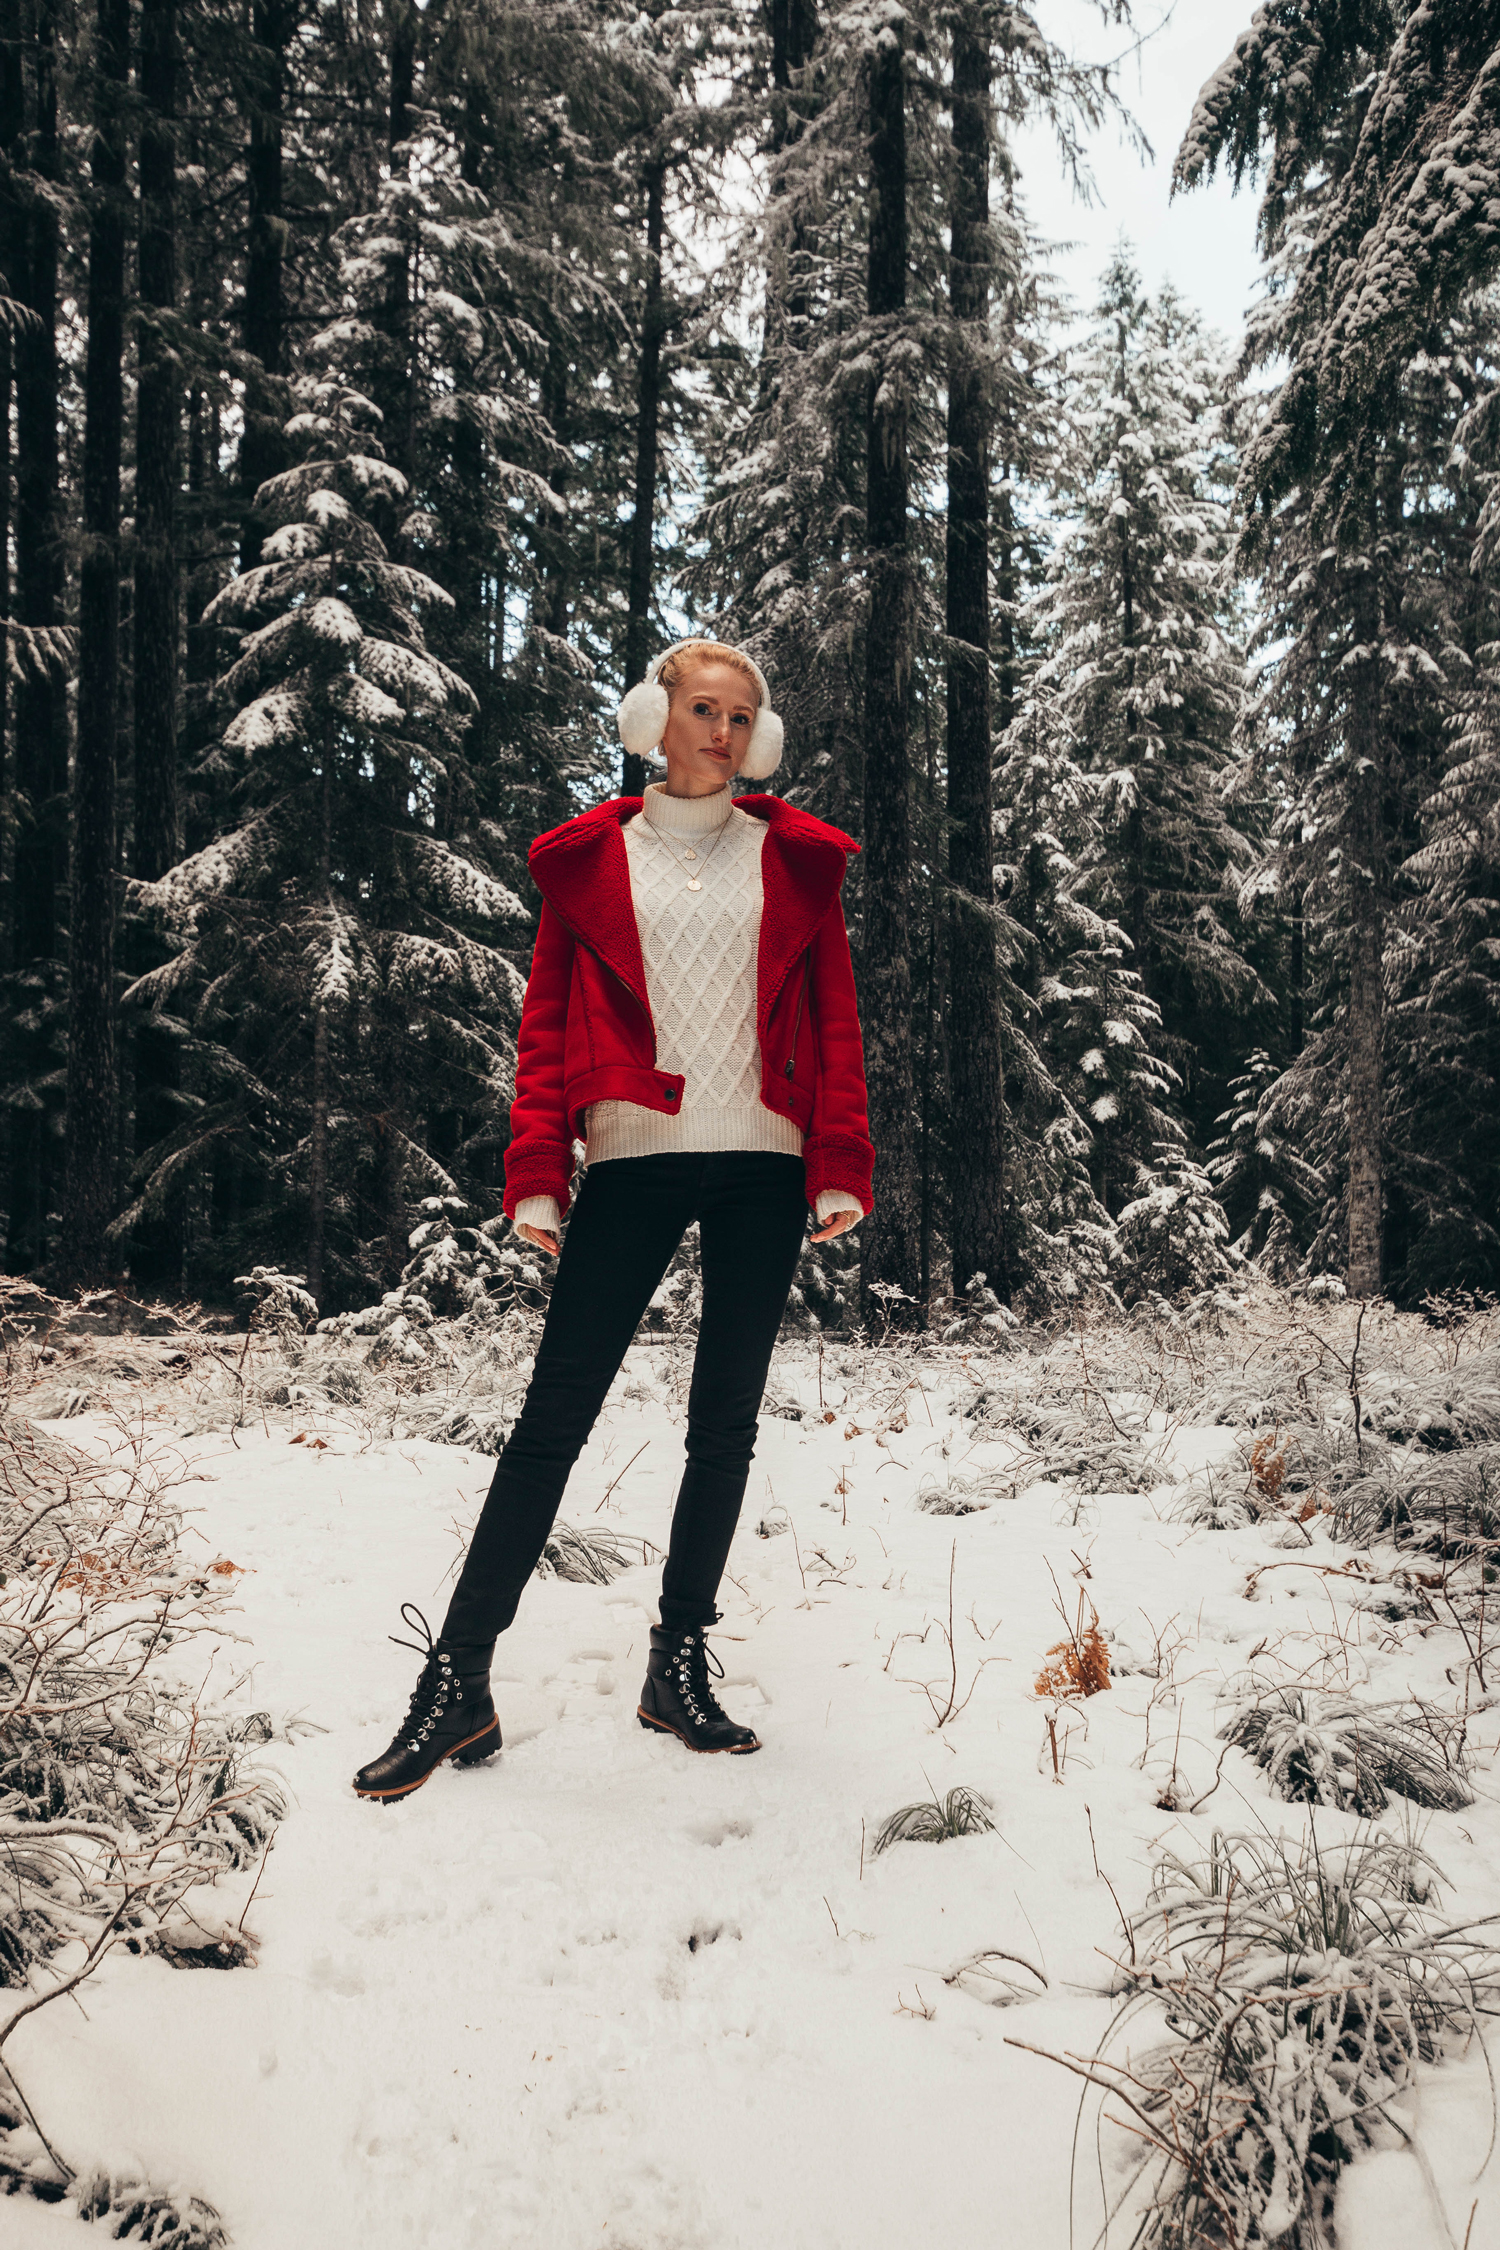 Red Shearling Jacket Winter Wonderland Snow Trees Style Outfit